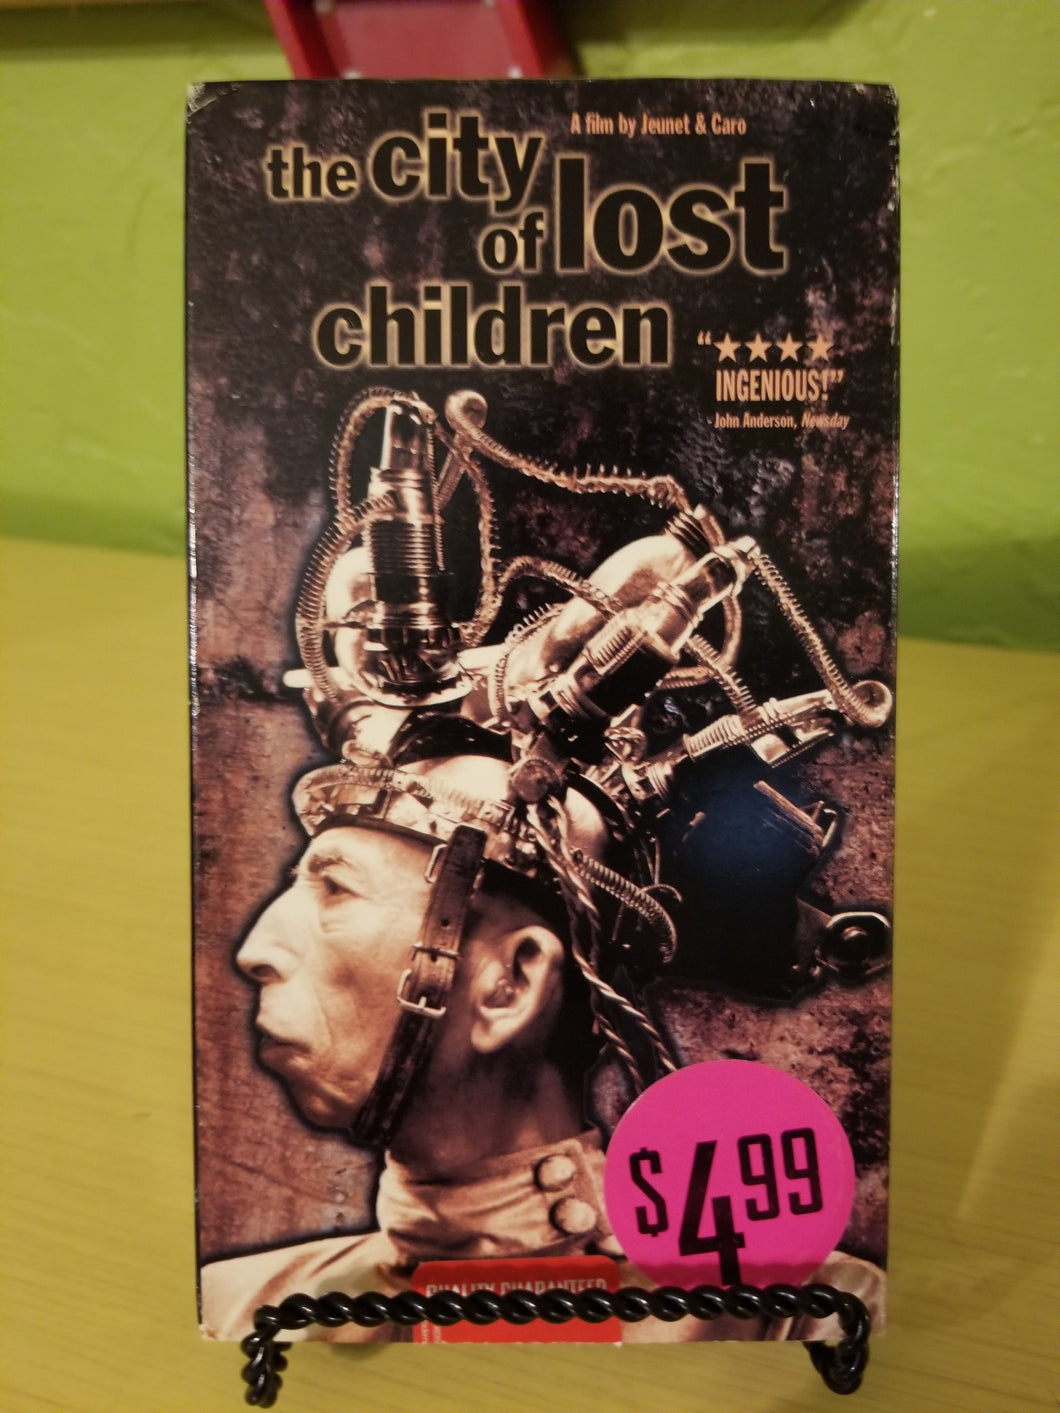 The City of Lost Children VHS